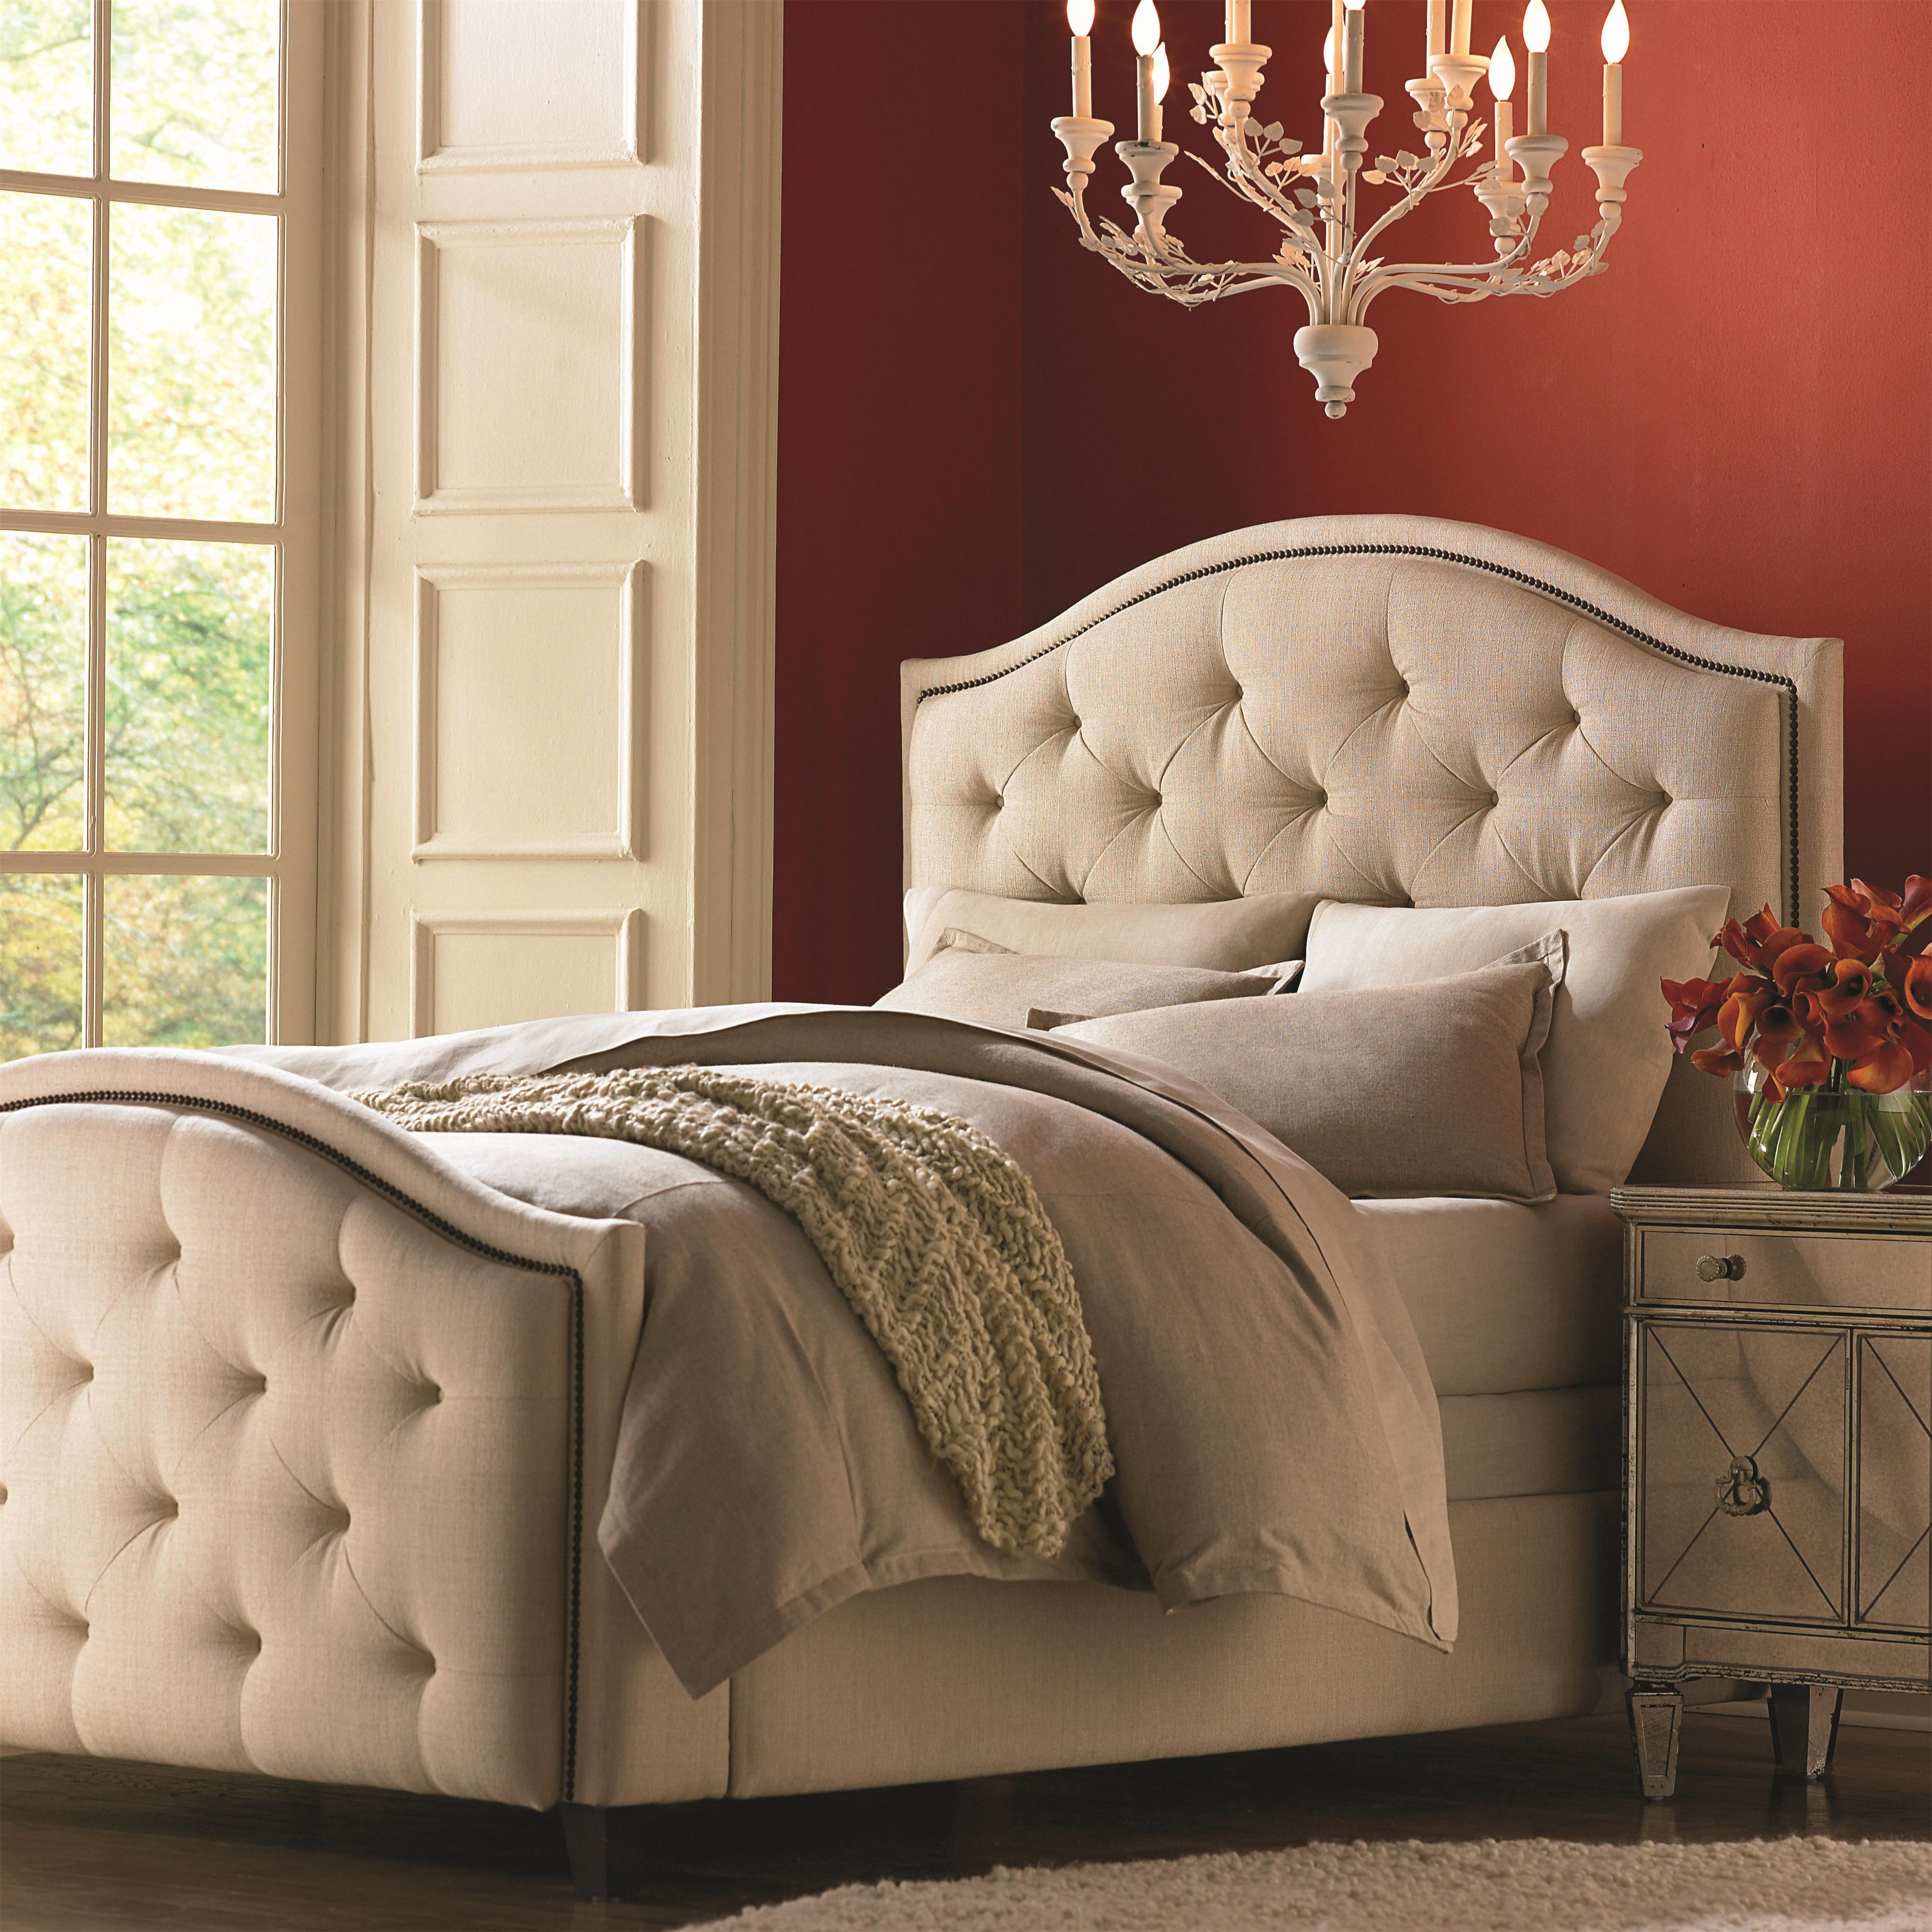 Queen Vienna Upholstered Bed With High Fb